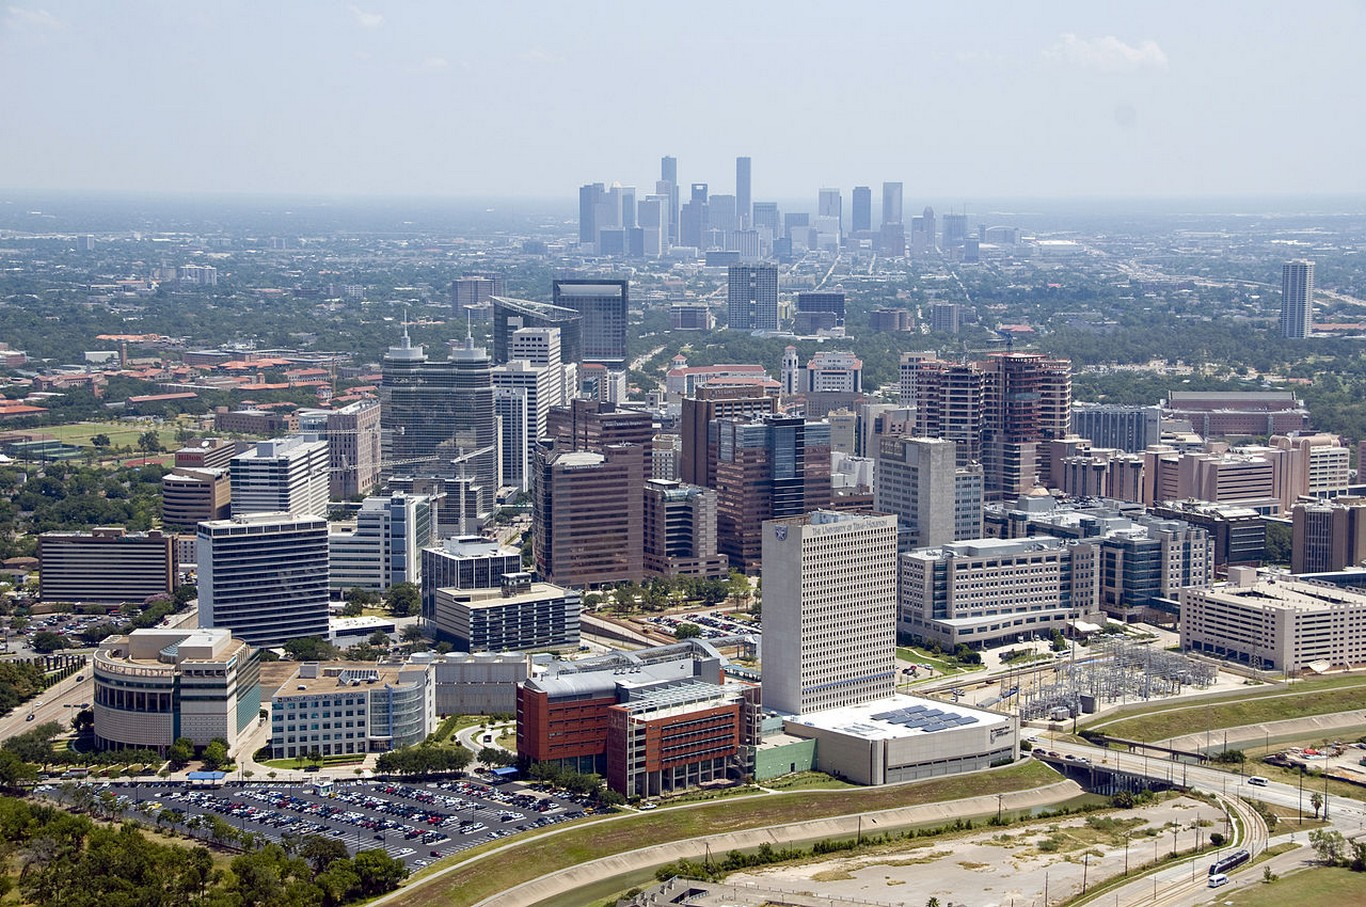 Aerial of Texas Medical Center with Downtown Houston